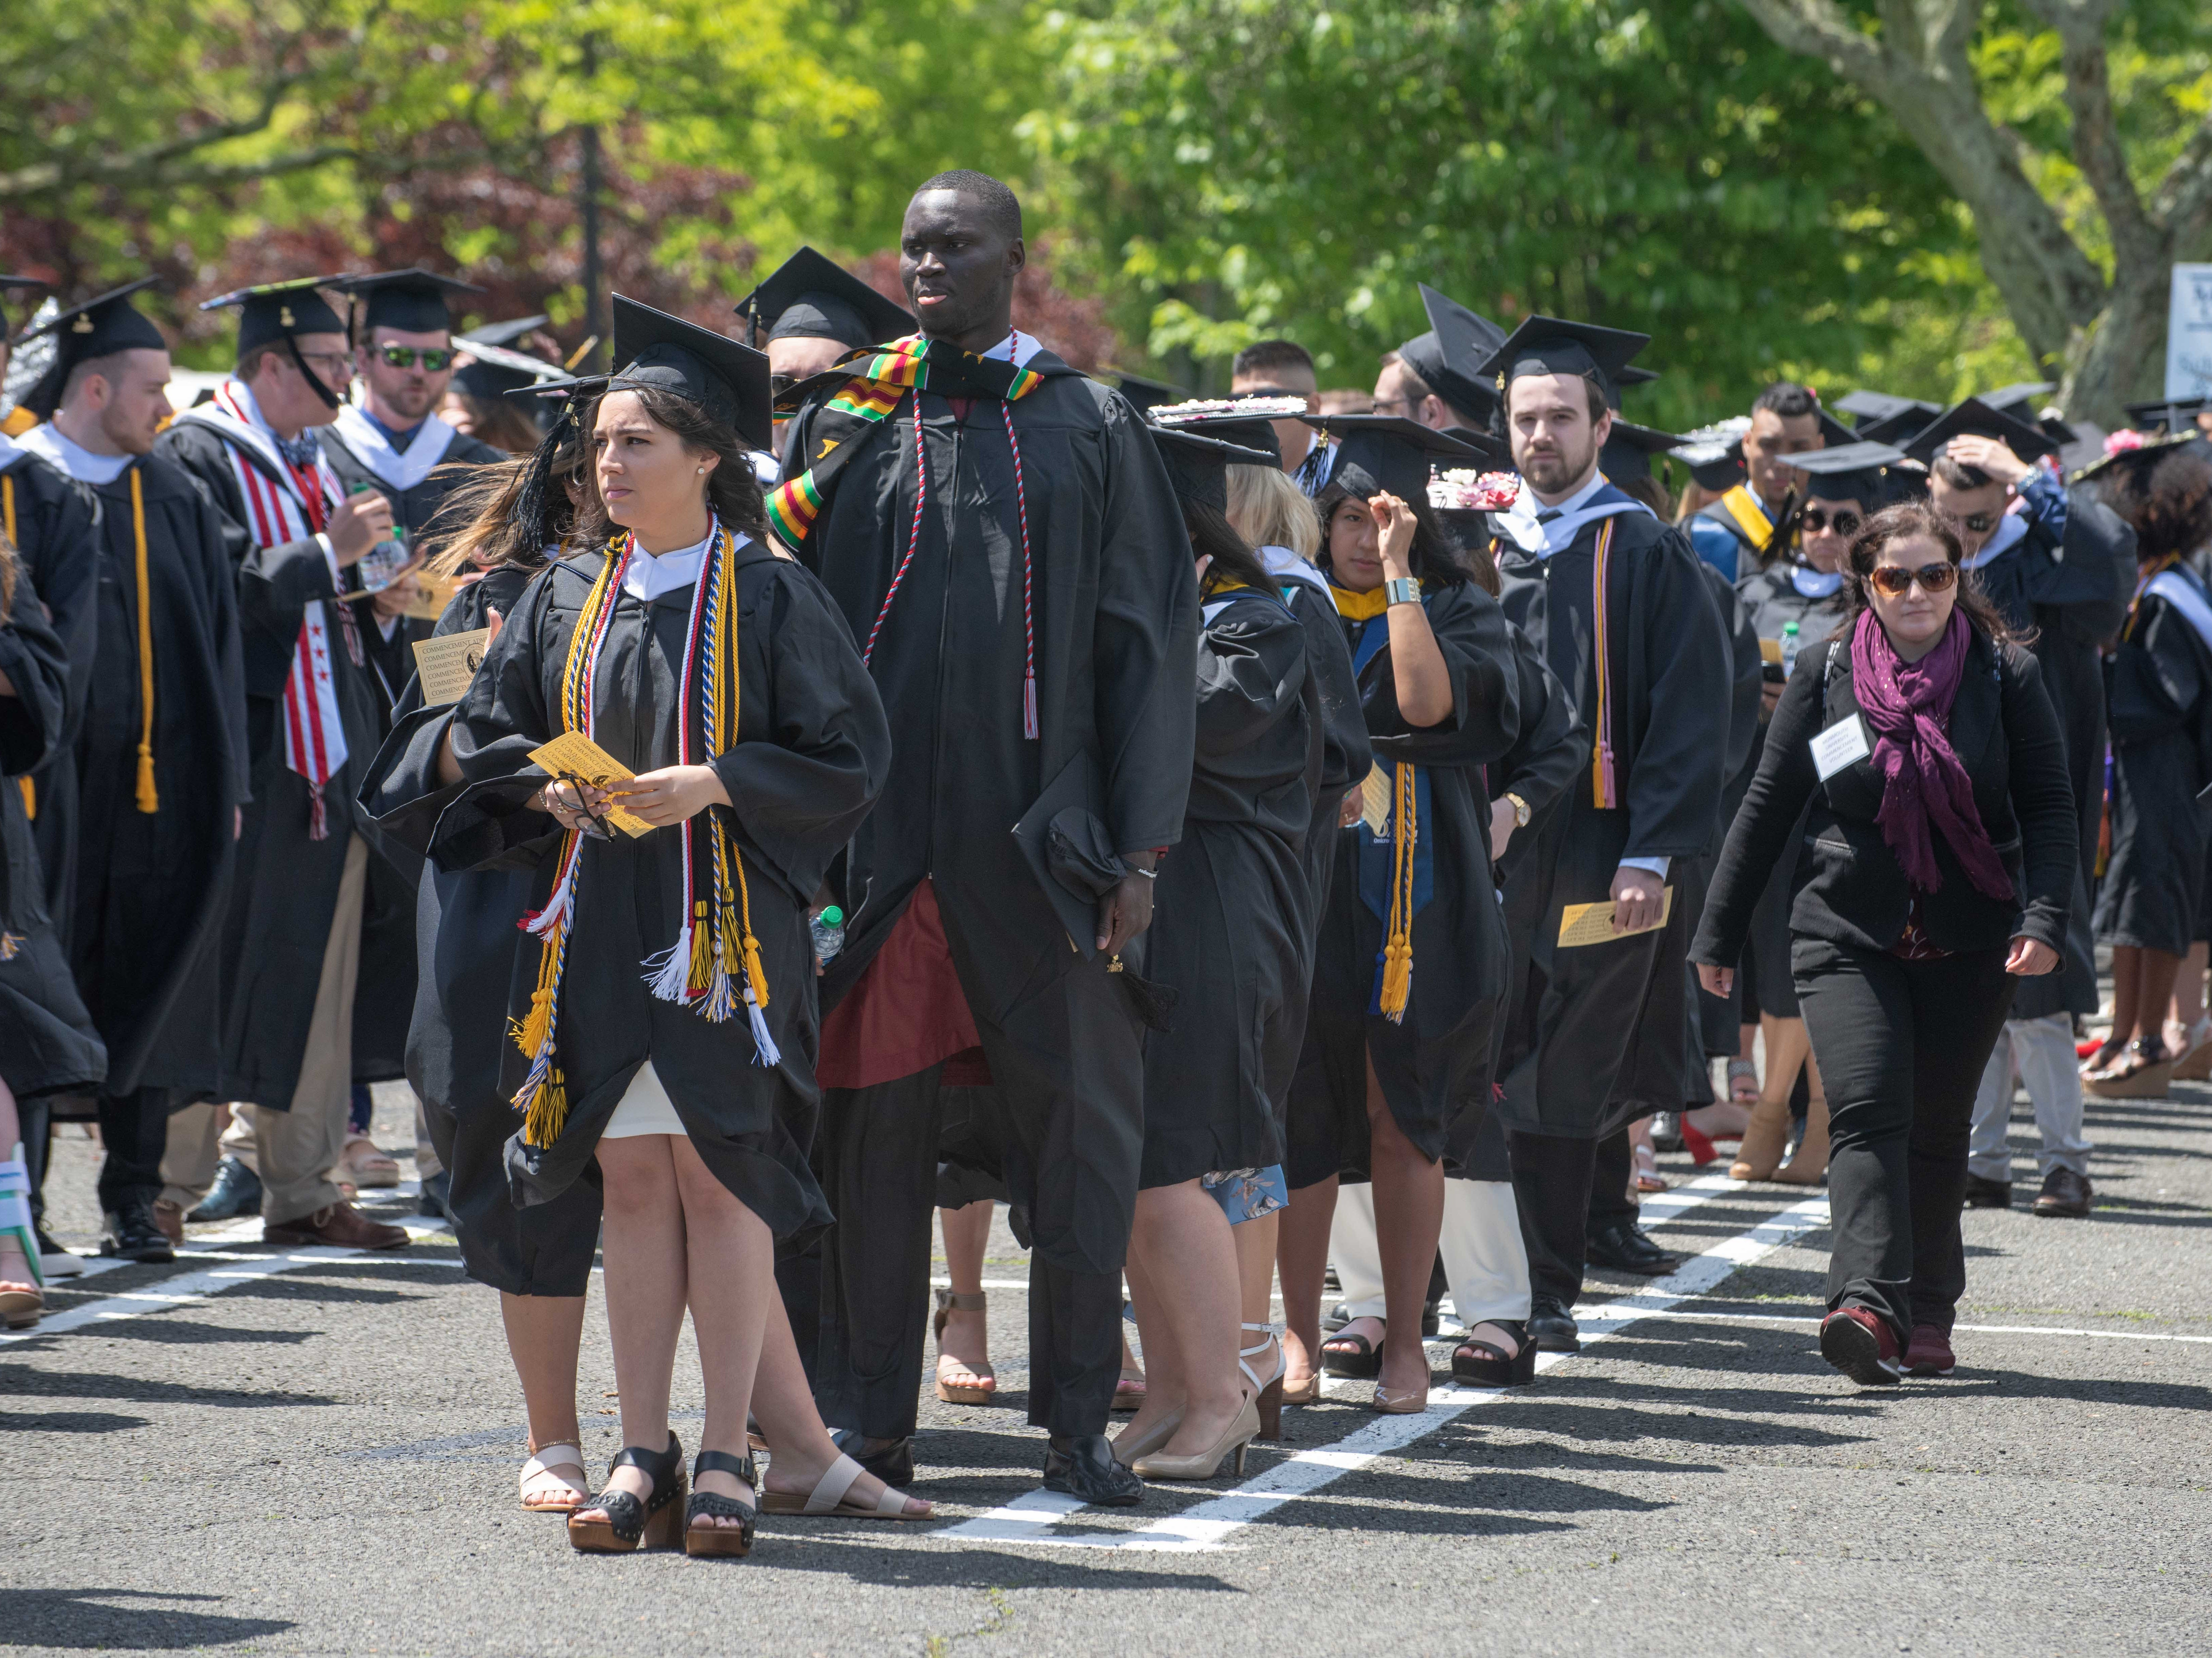 Monmouth University Undergraduate Commencement class of 2019 at PNC Bank Arts Center, Holmdel. 5/15/19 Photo/James J. Connolly/Correspondent.